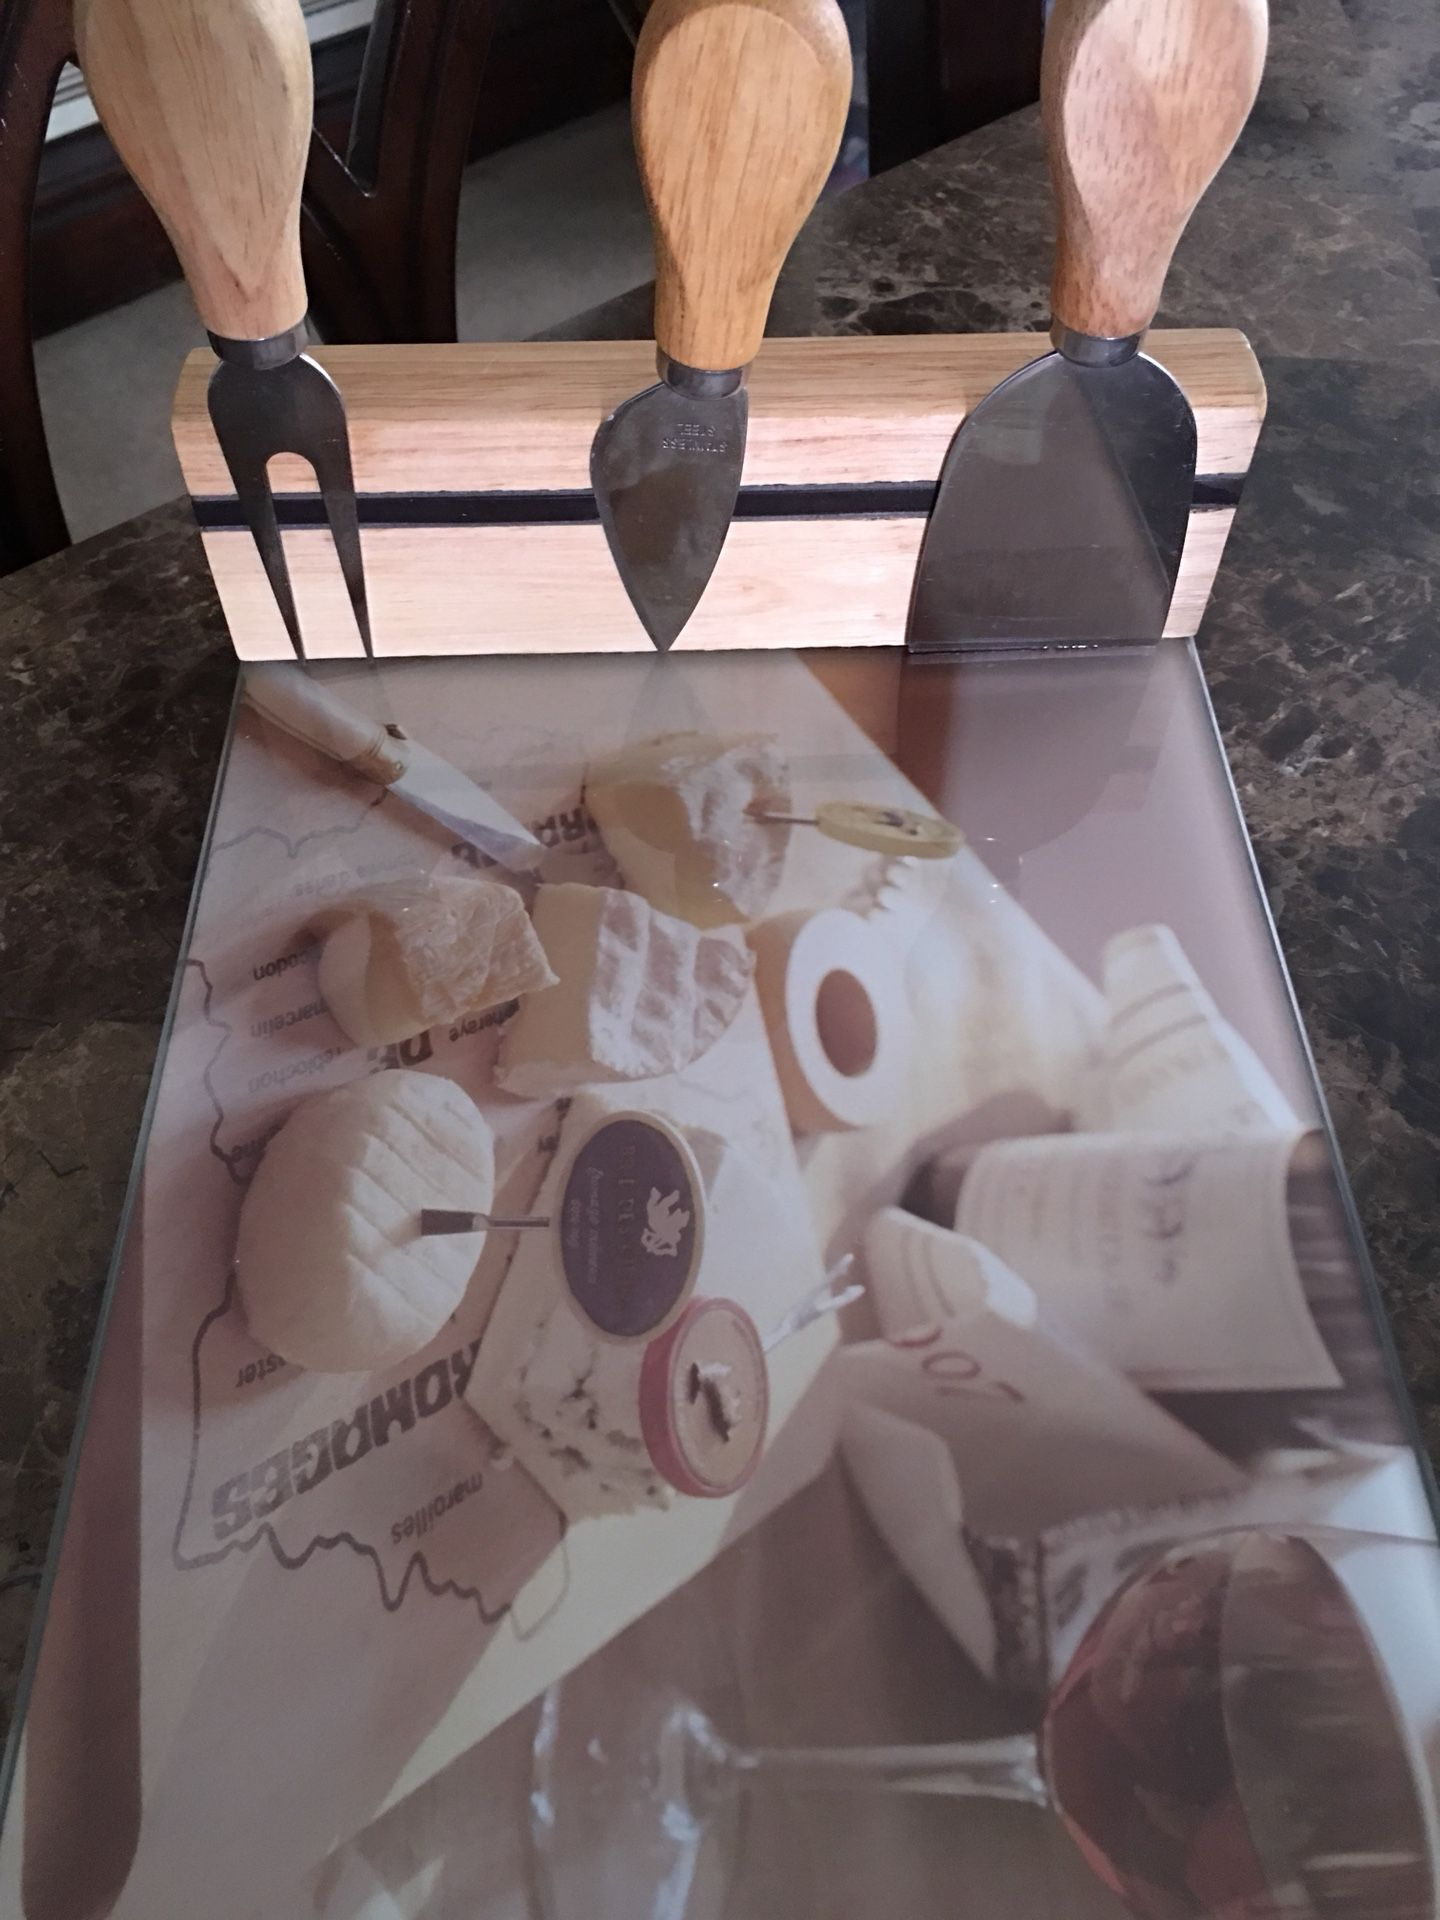 Cheese board and tools